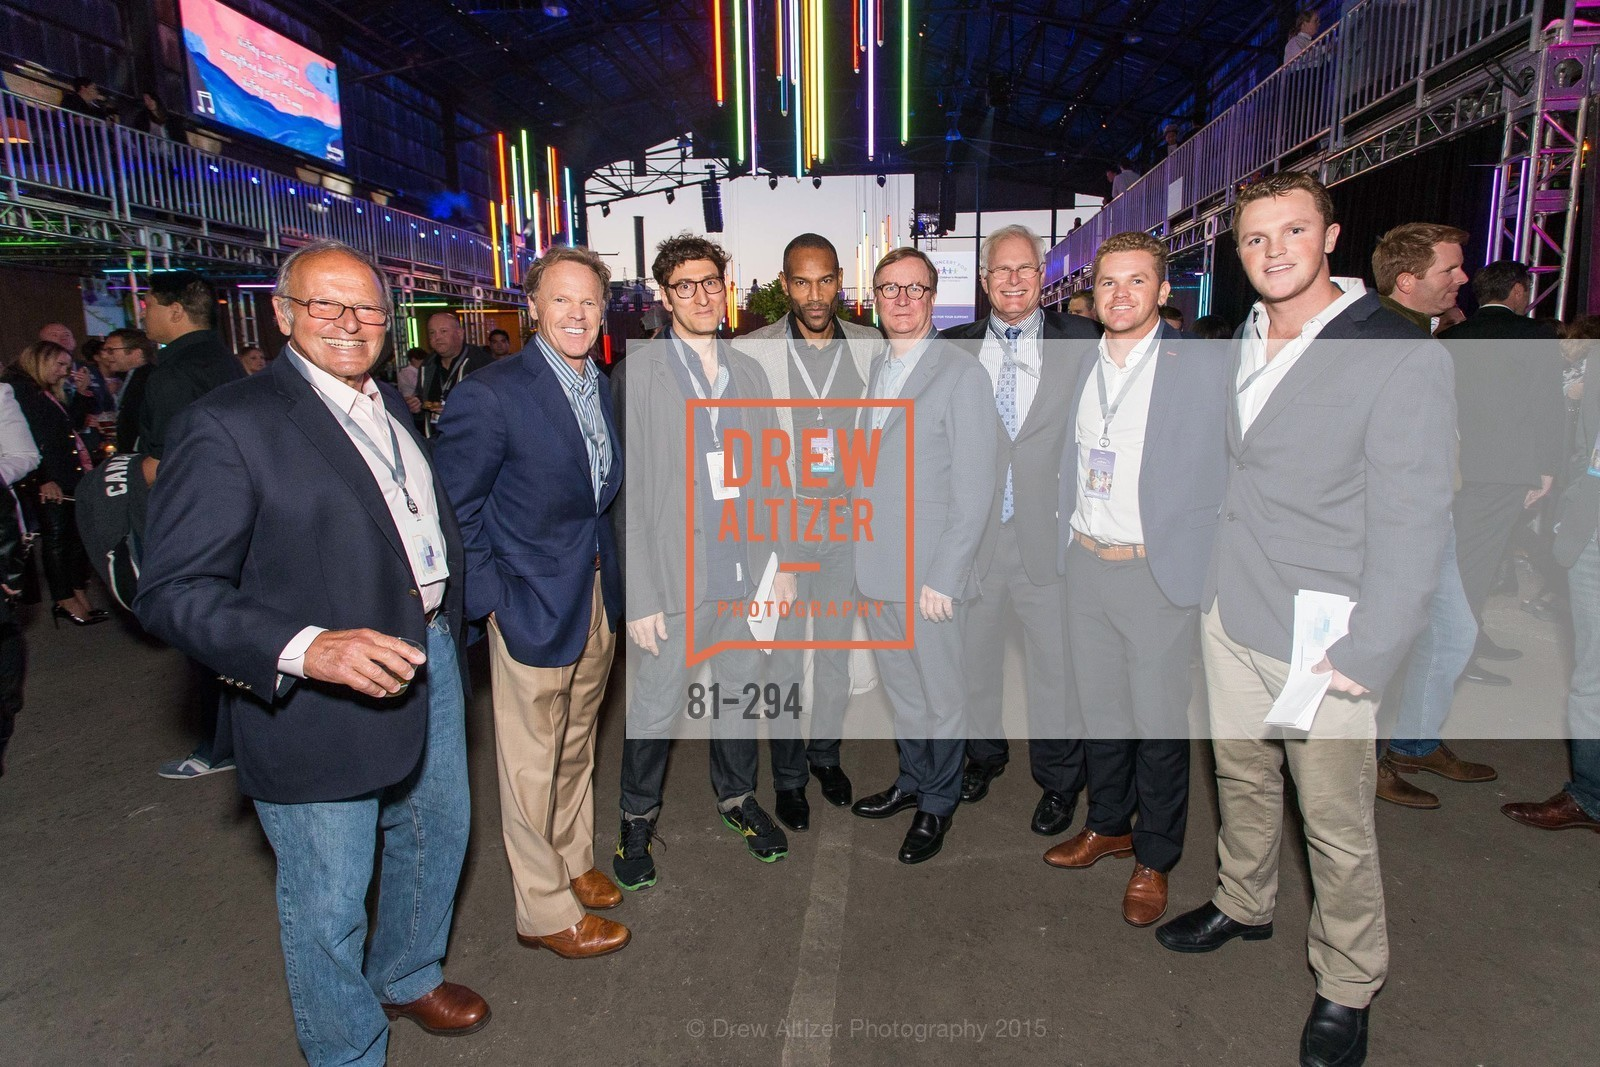 Burt Lubin, Tony Prophet, Sam Hawgood, Mark Laret, The Concert For UCSF Benioff Children's Hospital, Pier 70, September 17th, 2015,Drew Altizer, Drew Altizer Photography, full-service event agency, private events, San Francisco photographer, photographer California